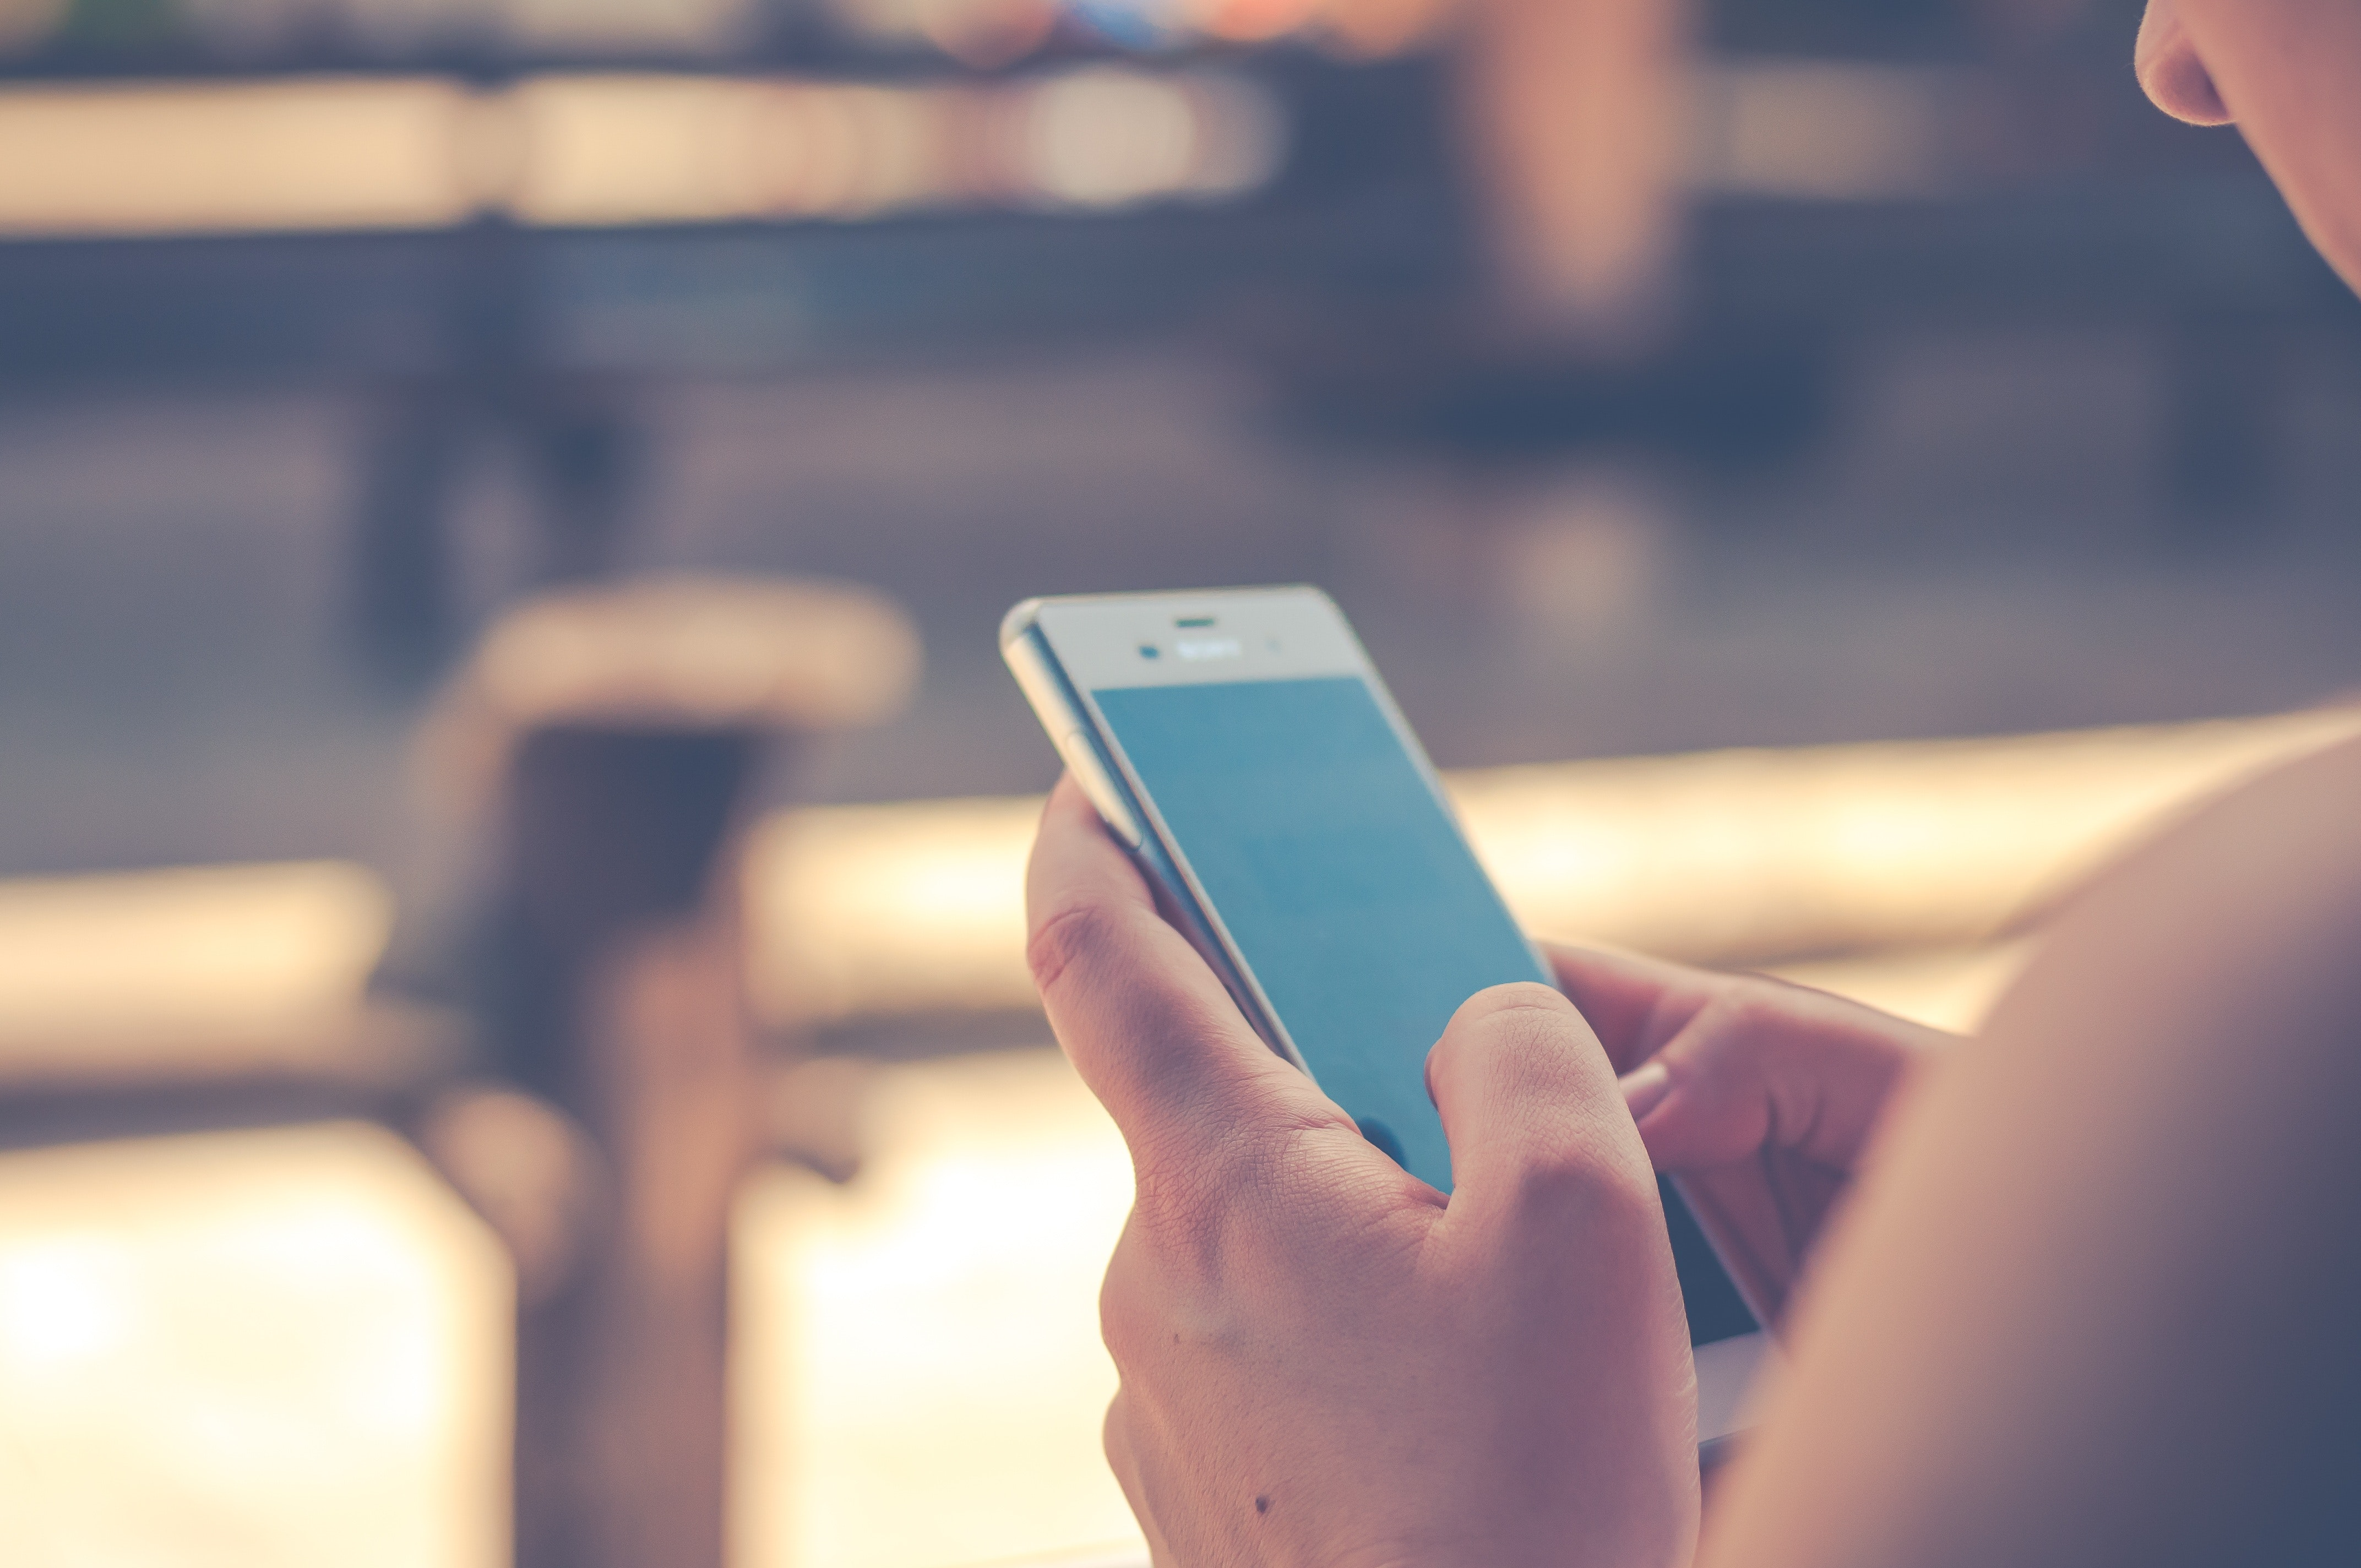 The Negative Effects of Mobile Phone Uses in our Health, Society and Environment